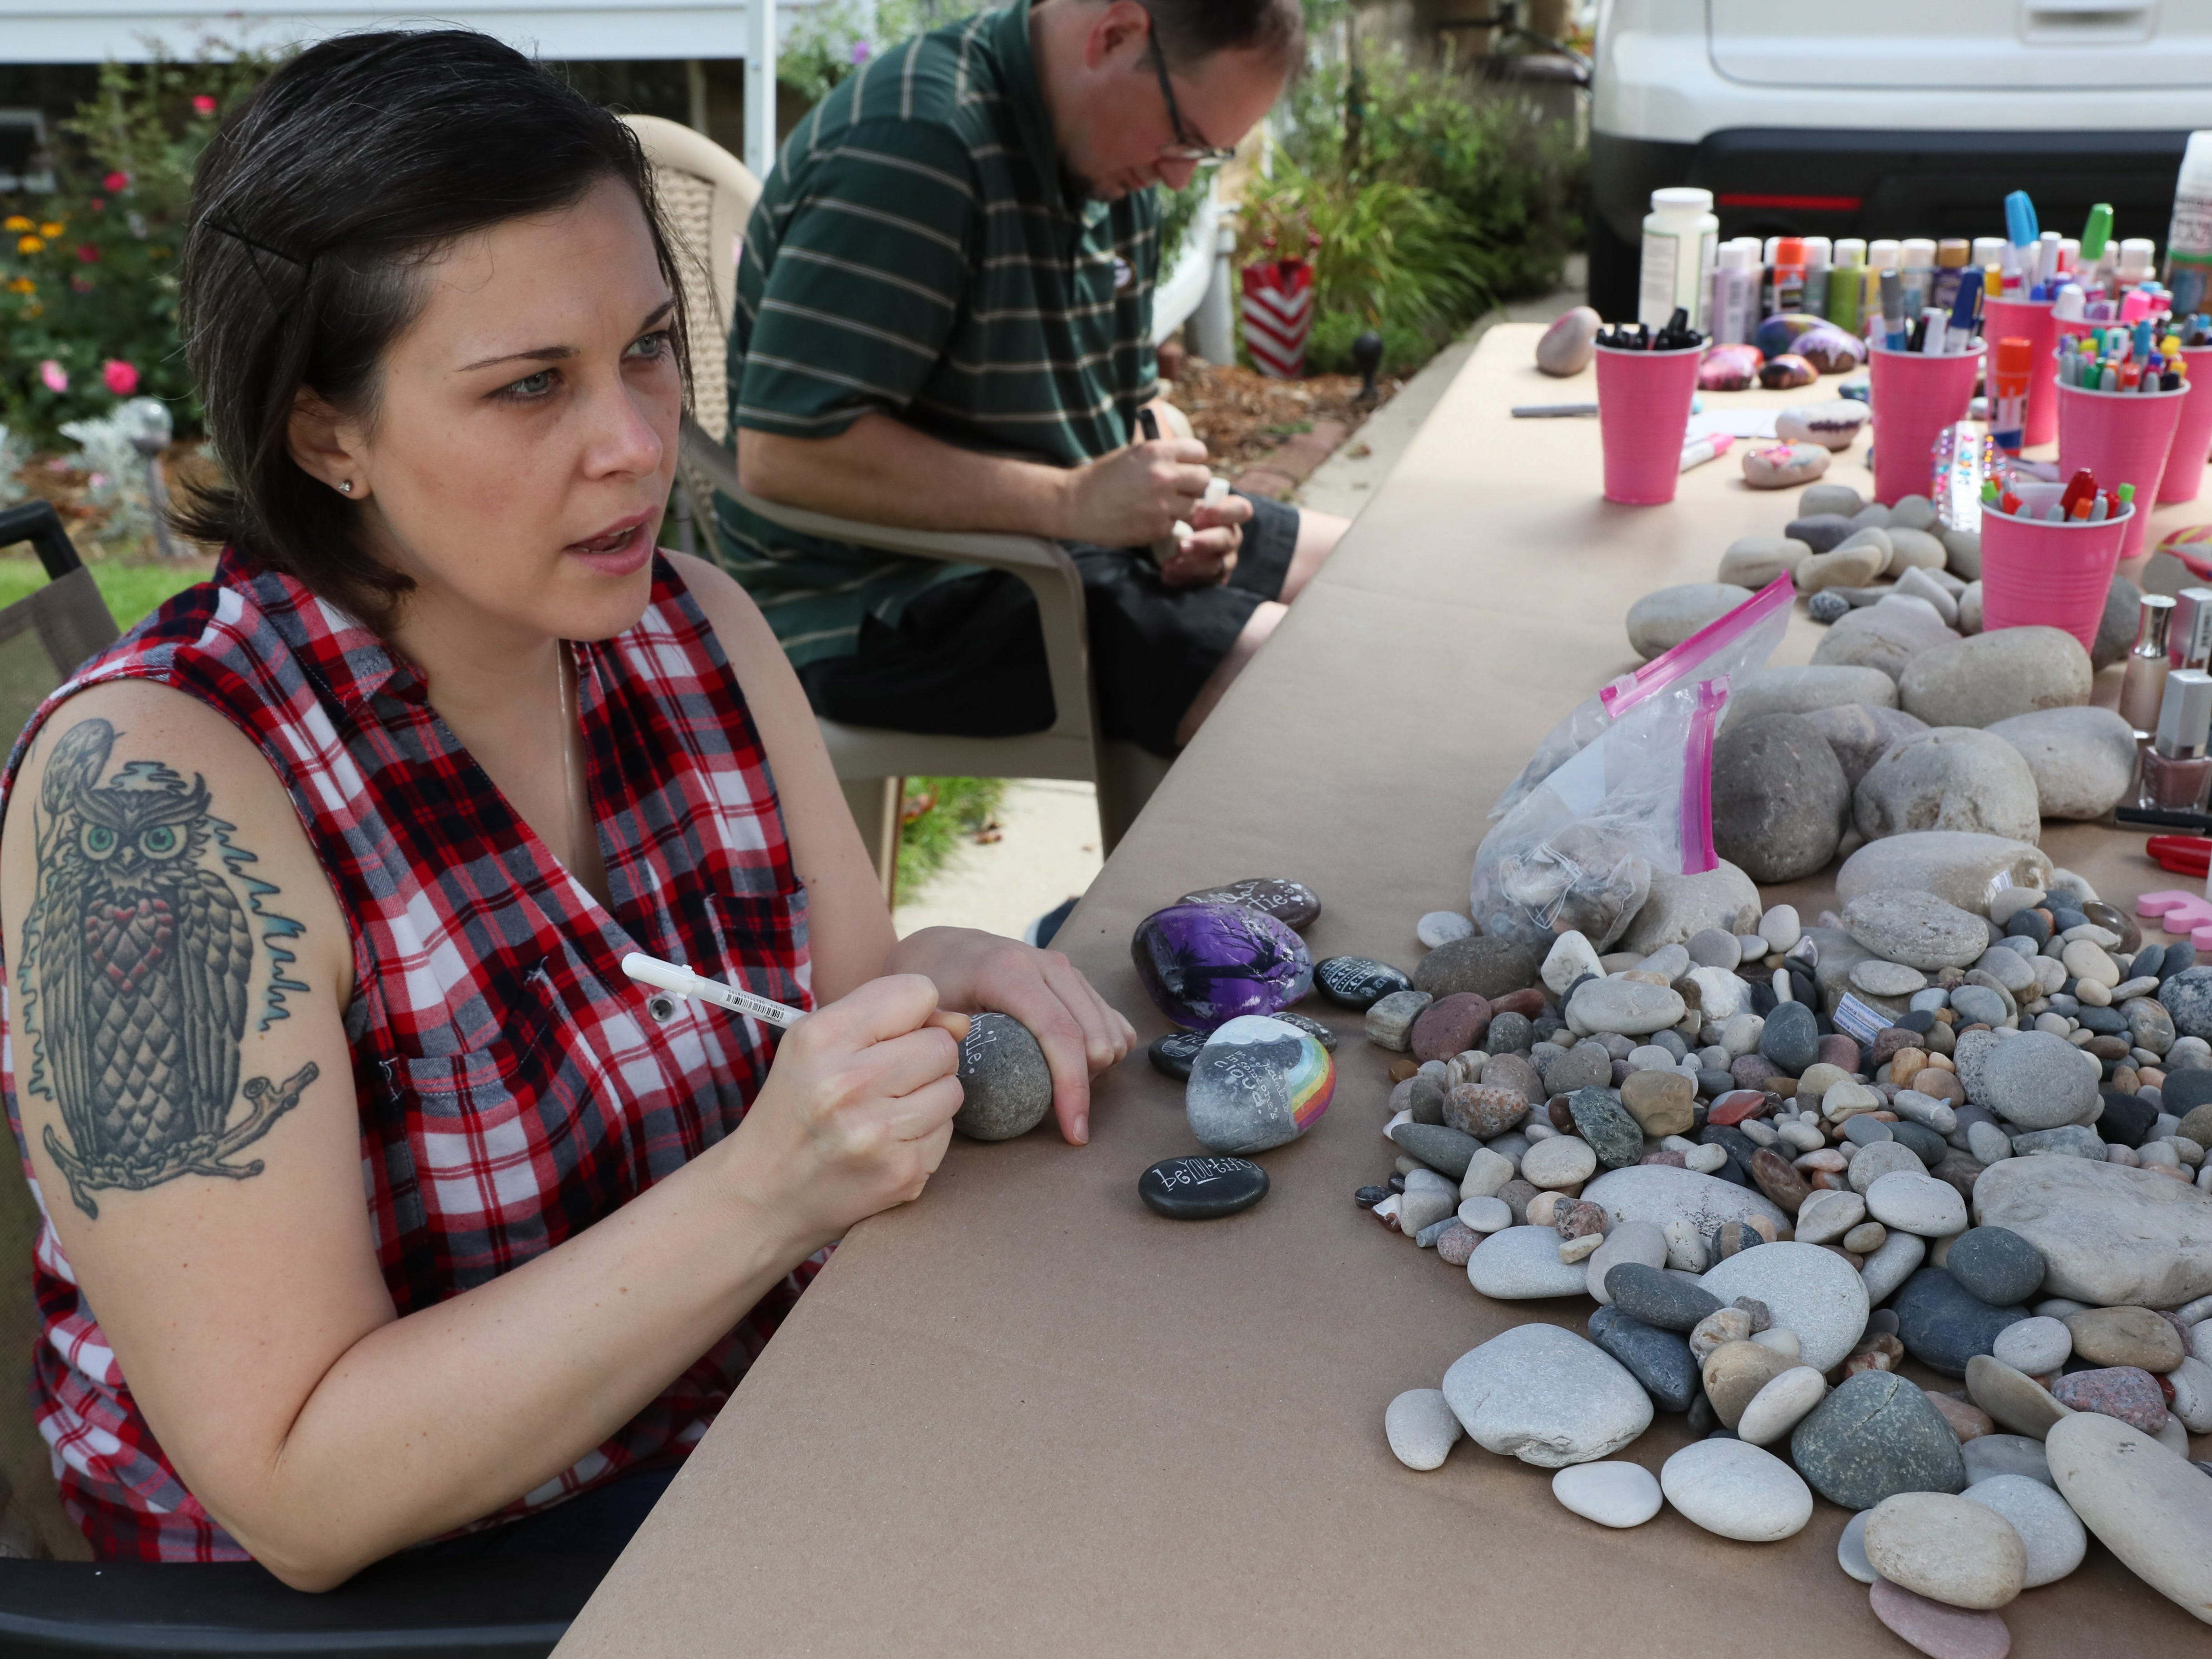 Crystal Zagorski and her husband Sam Zagorski add inspirational messages to rocks that WI Rocks will place around neighborhoods for people to find.